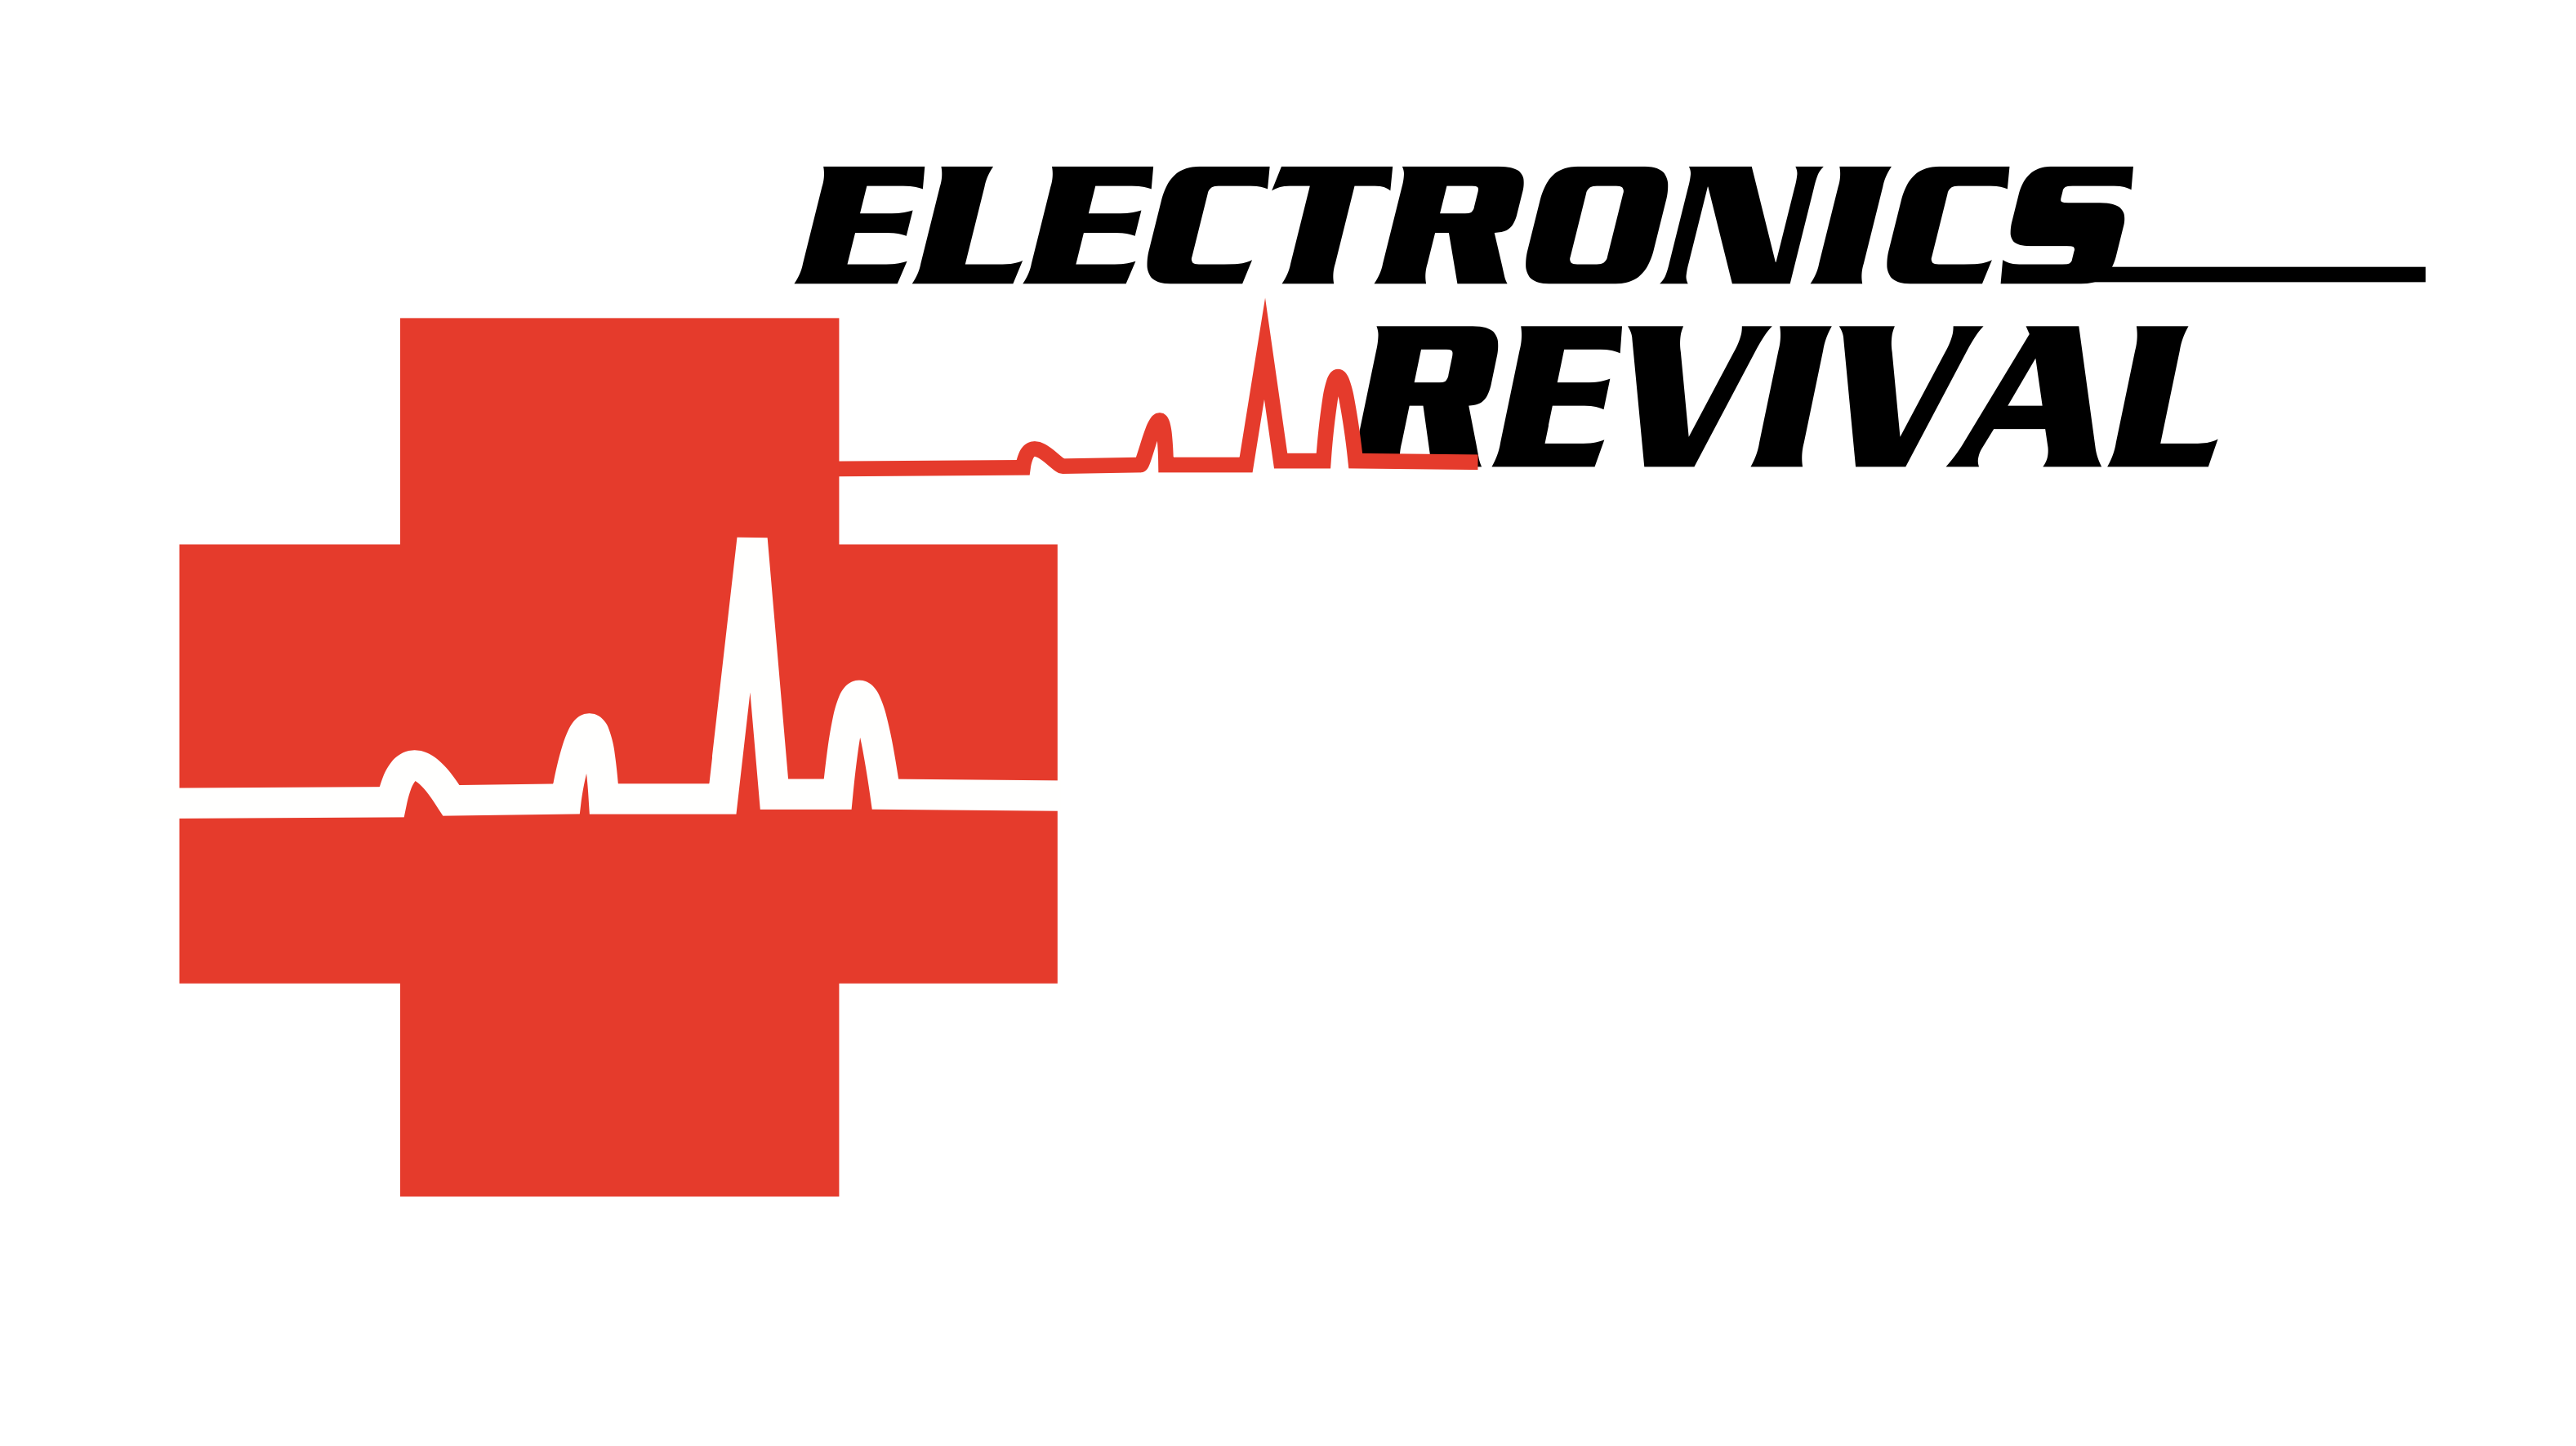 Electronics Revival